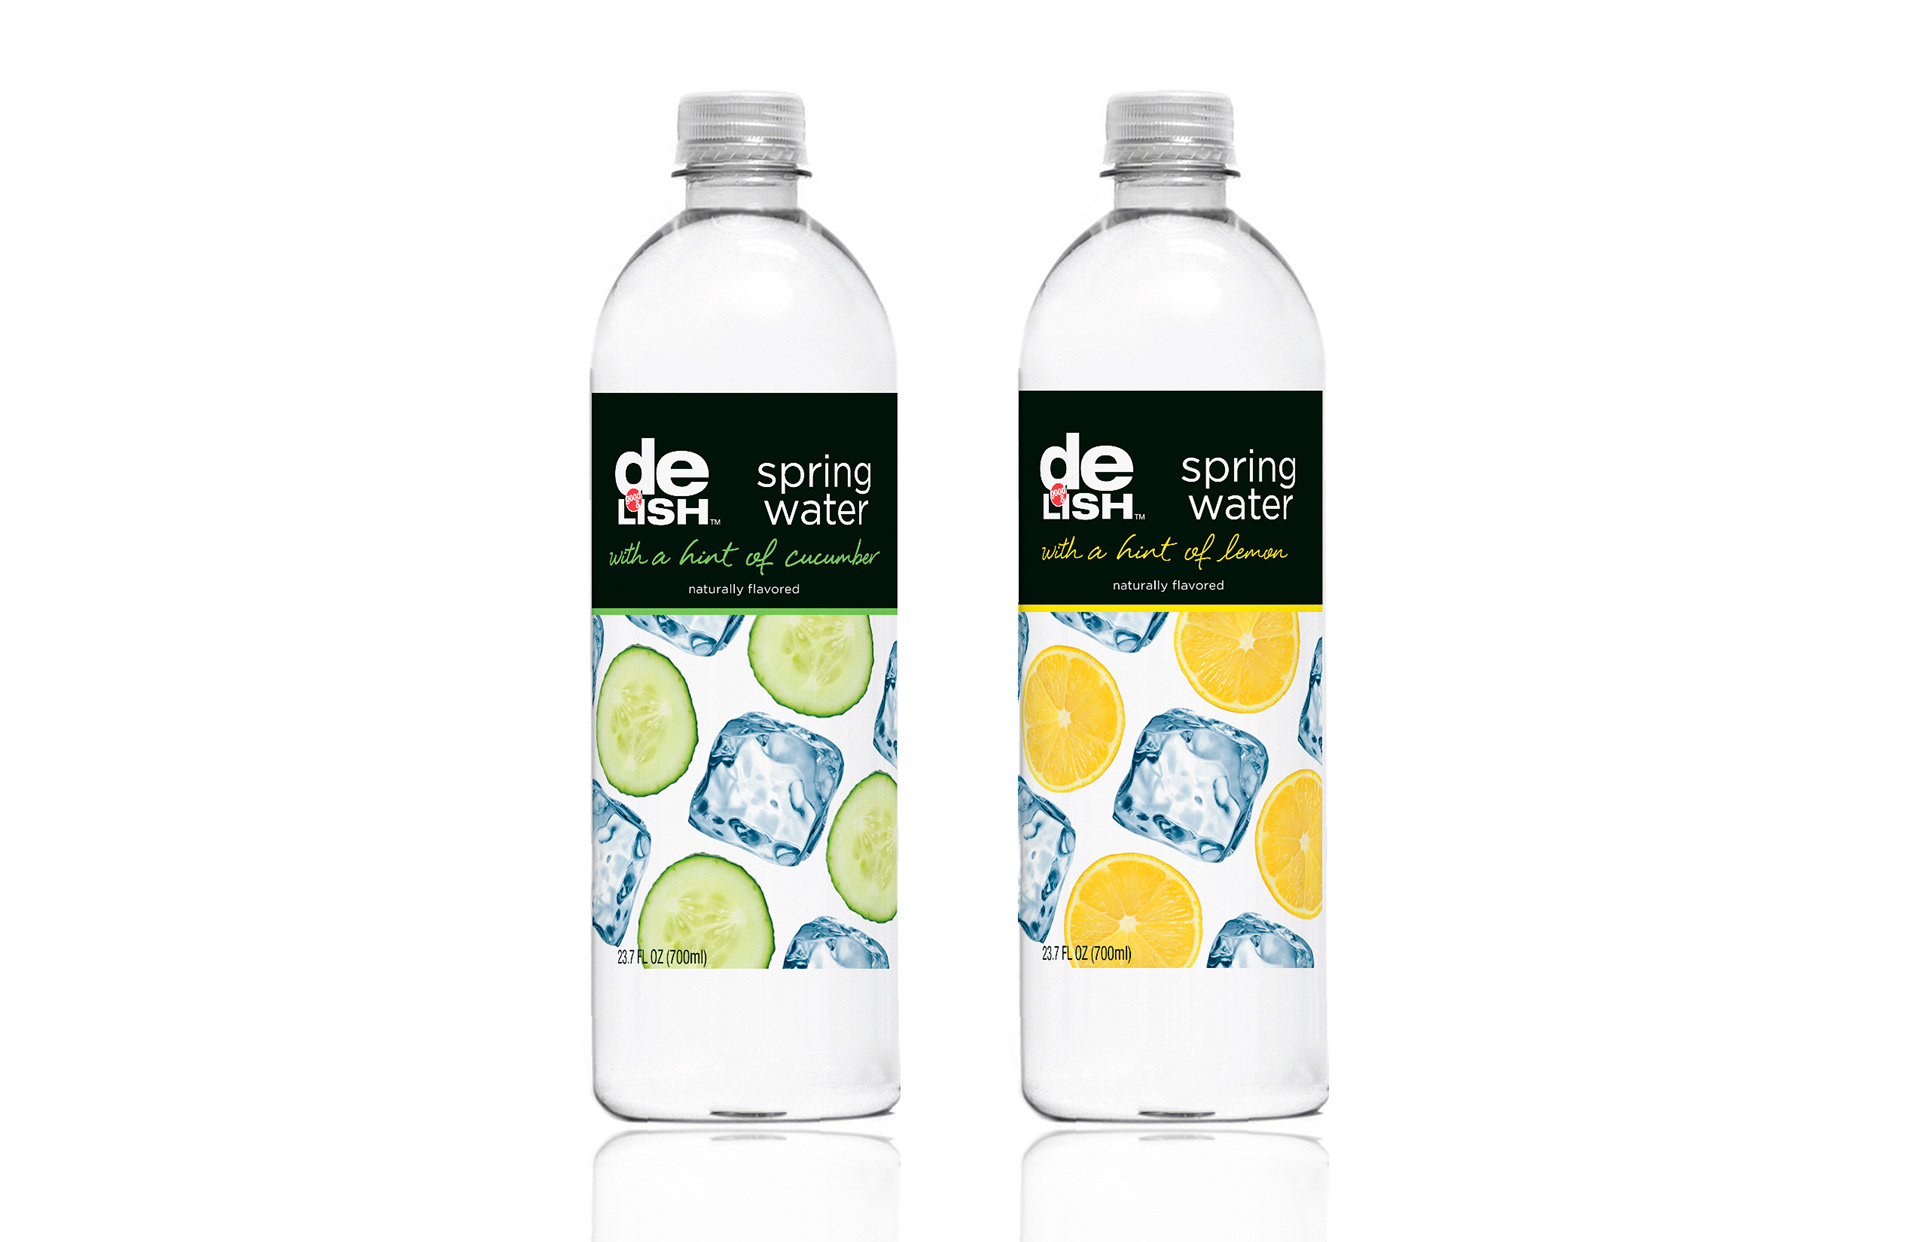 Mason Ping Graphic Design Flavored Water Packaging Delish